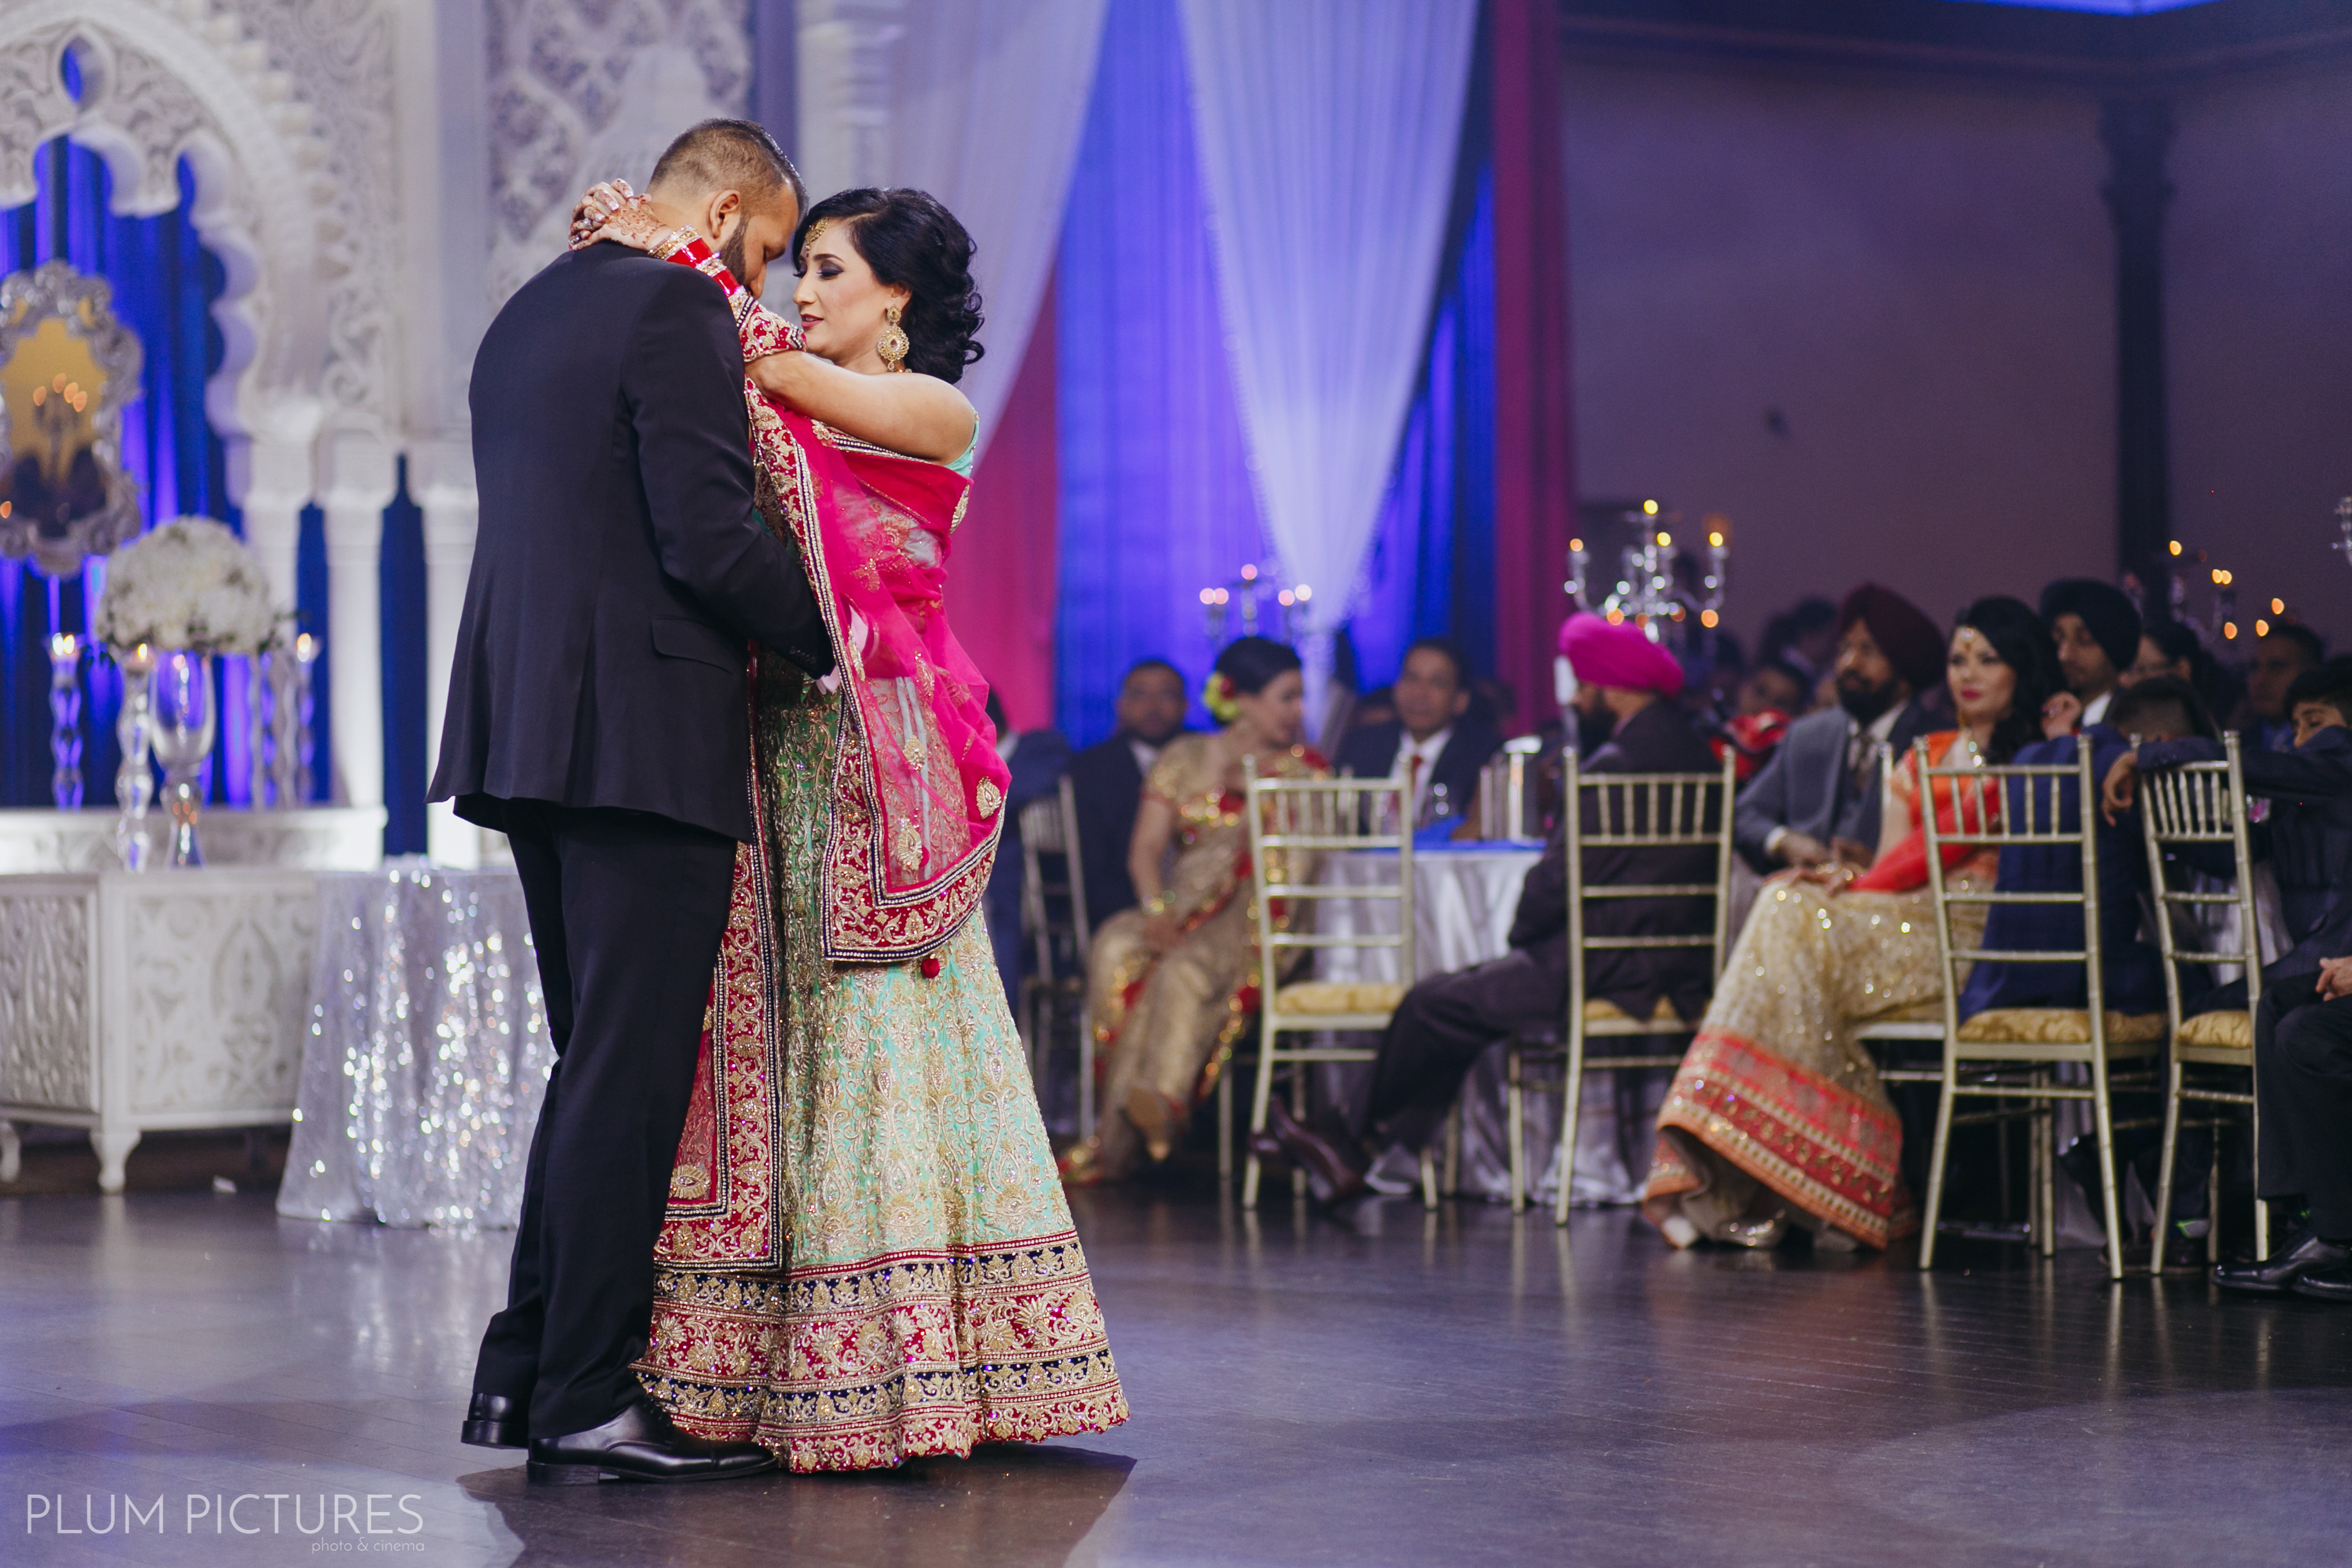 Jessi + Pardeep [PLUM PICTURES]-124